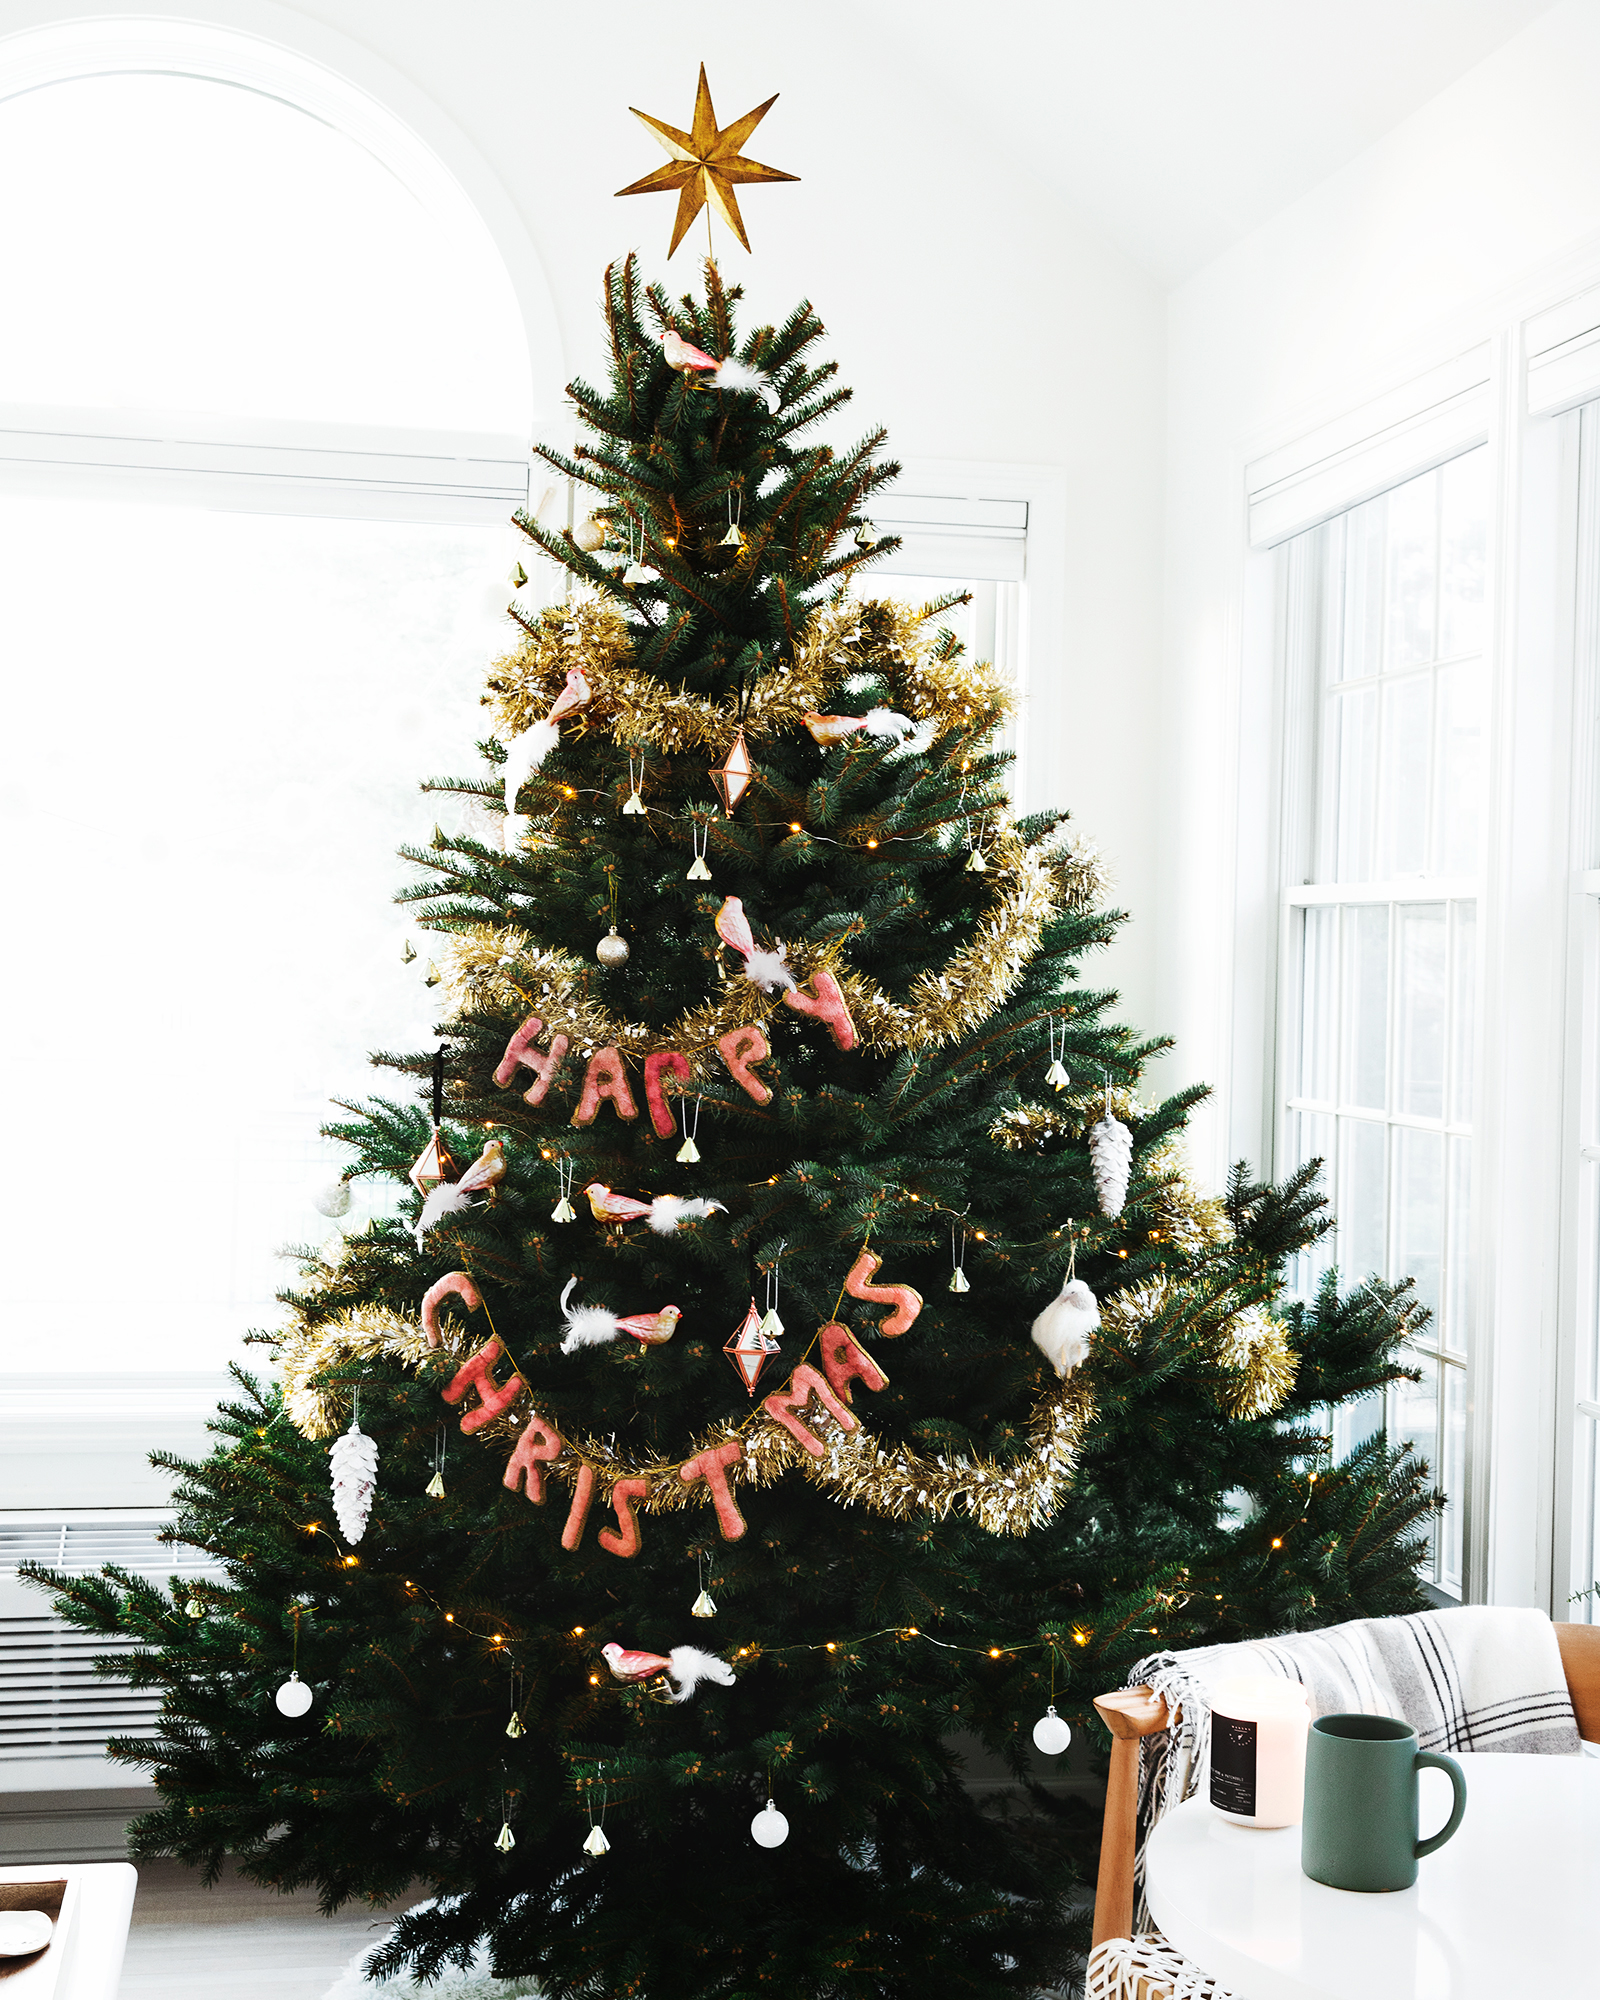 ABHSS_JG_HolidayDecor_0170.jpg